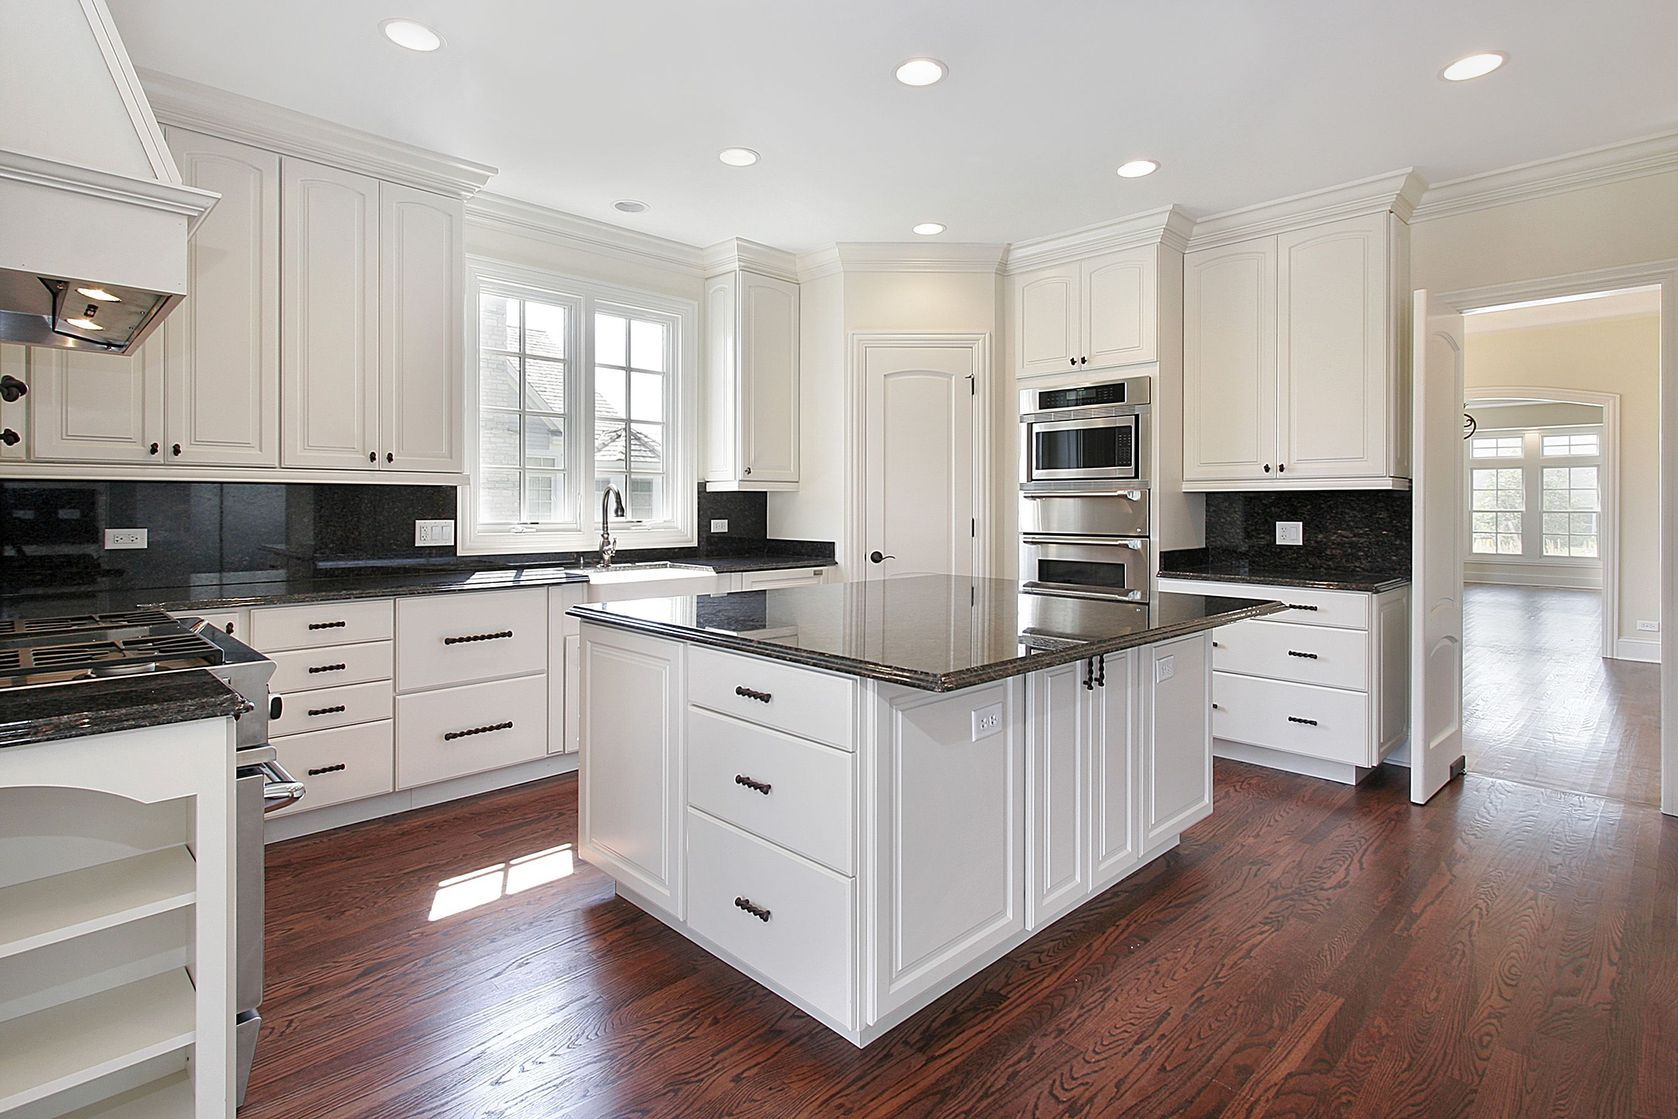 Cabinet Refinishing Kitchen Cabinet Refinishing Baltimore MD - Refurbish kitchen cabinets